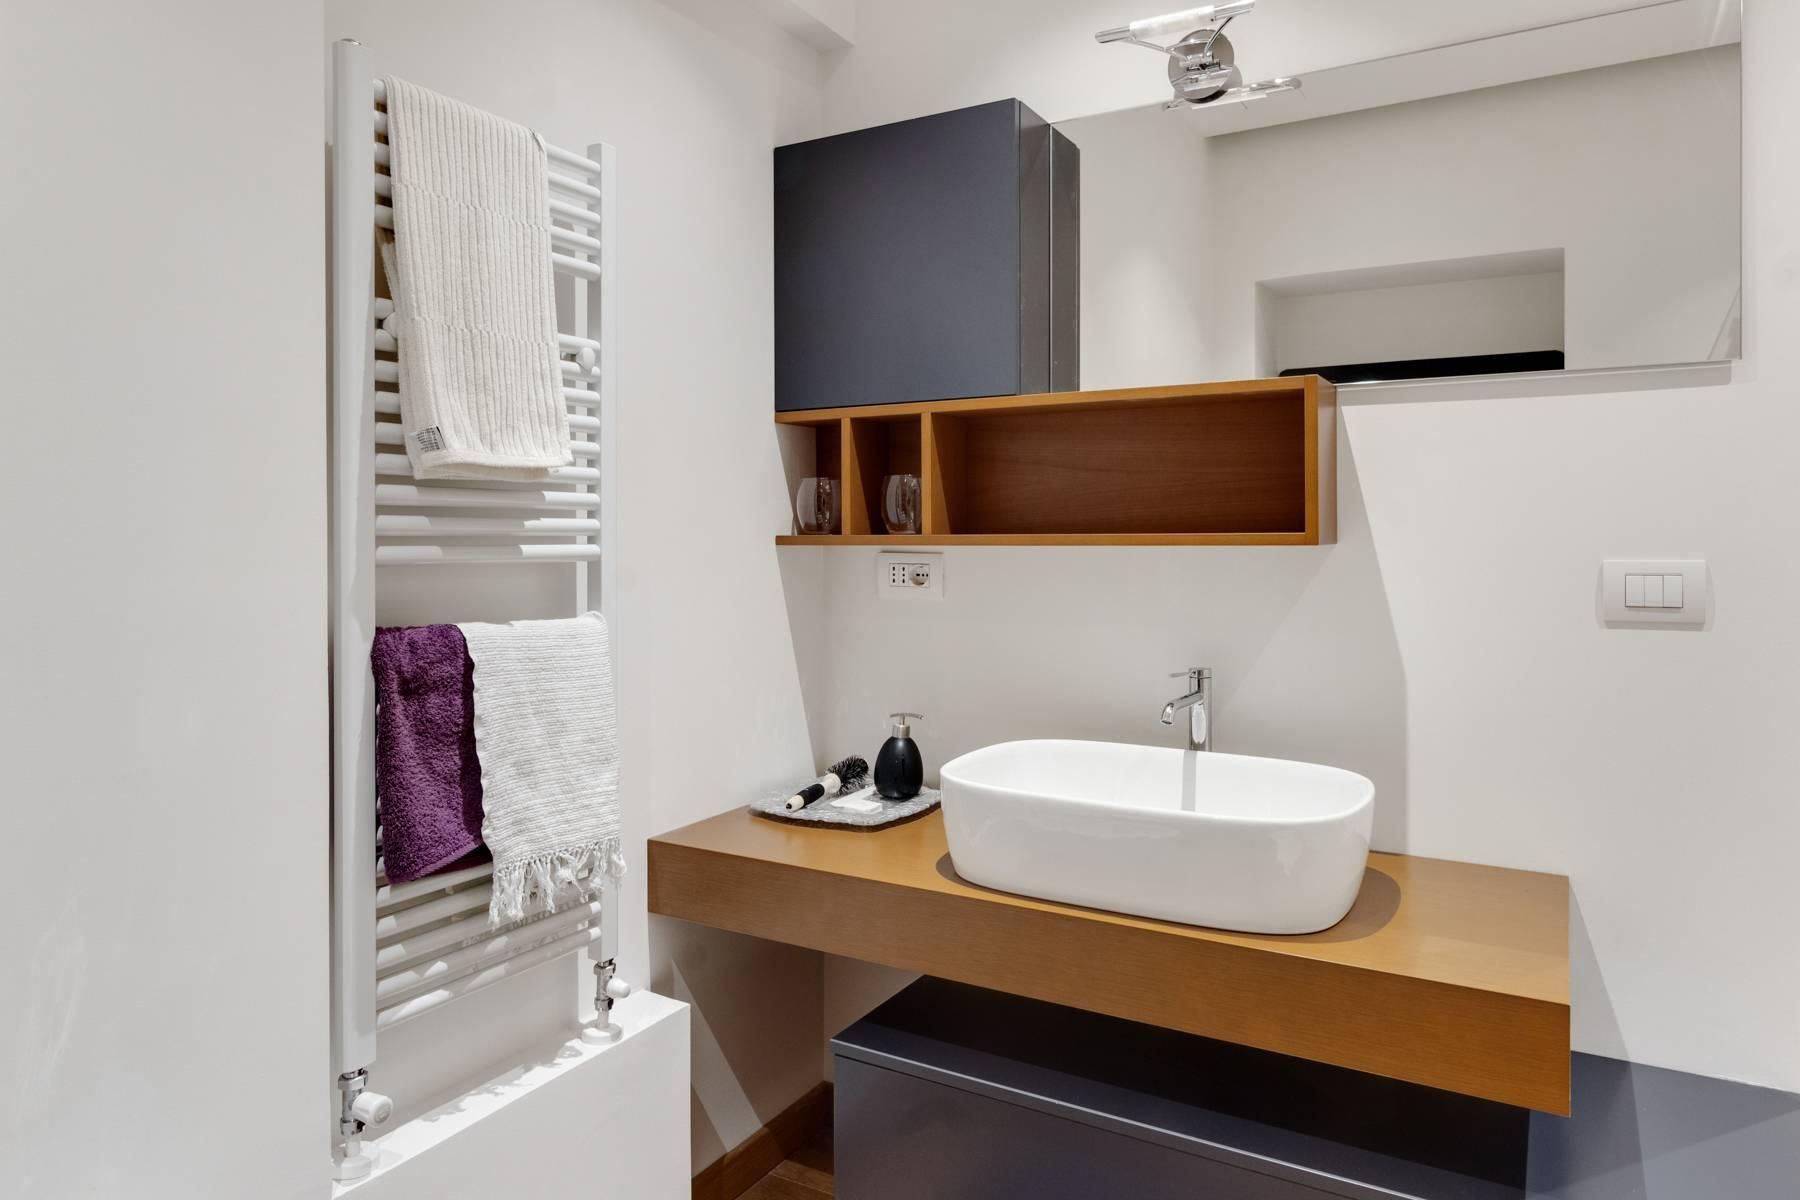 New apartment fully furnished in the center of Turin - 10